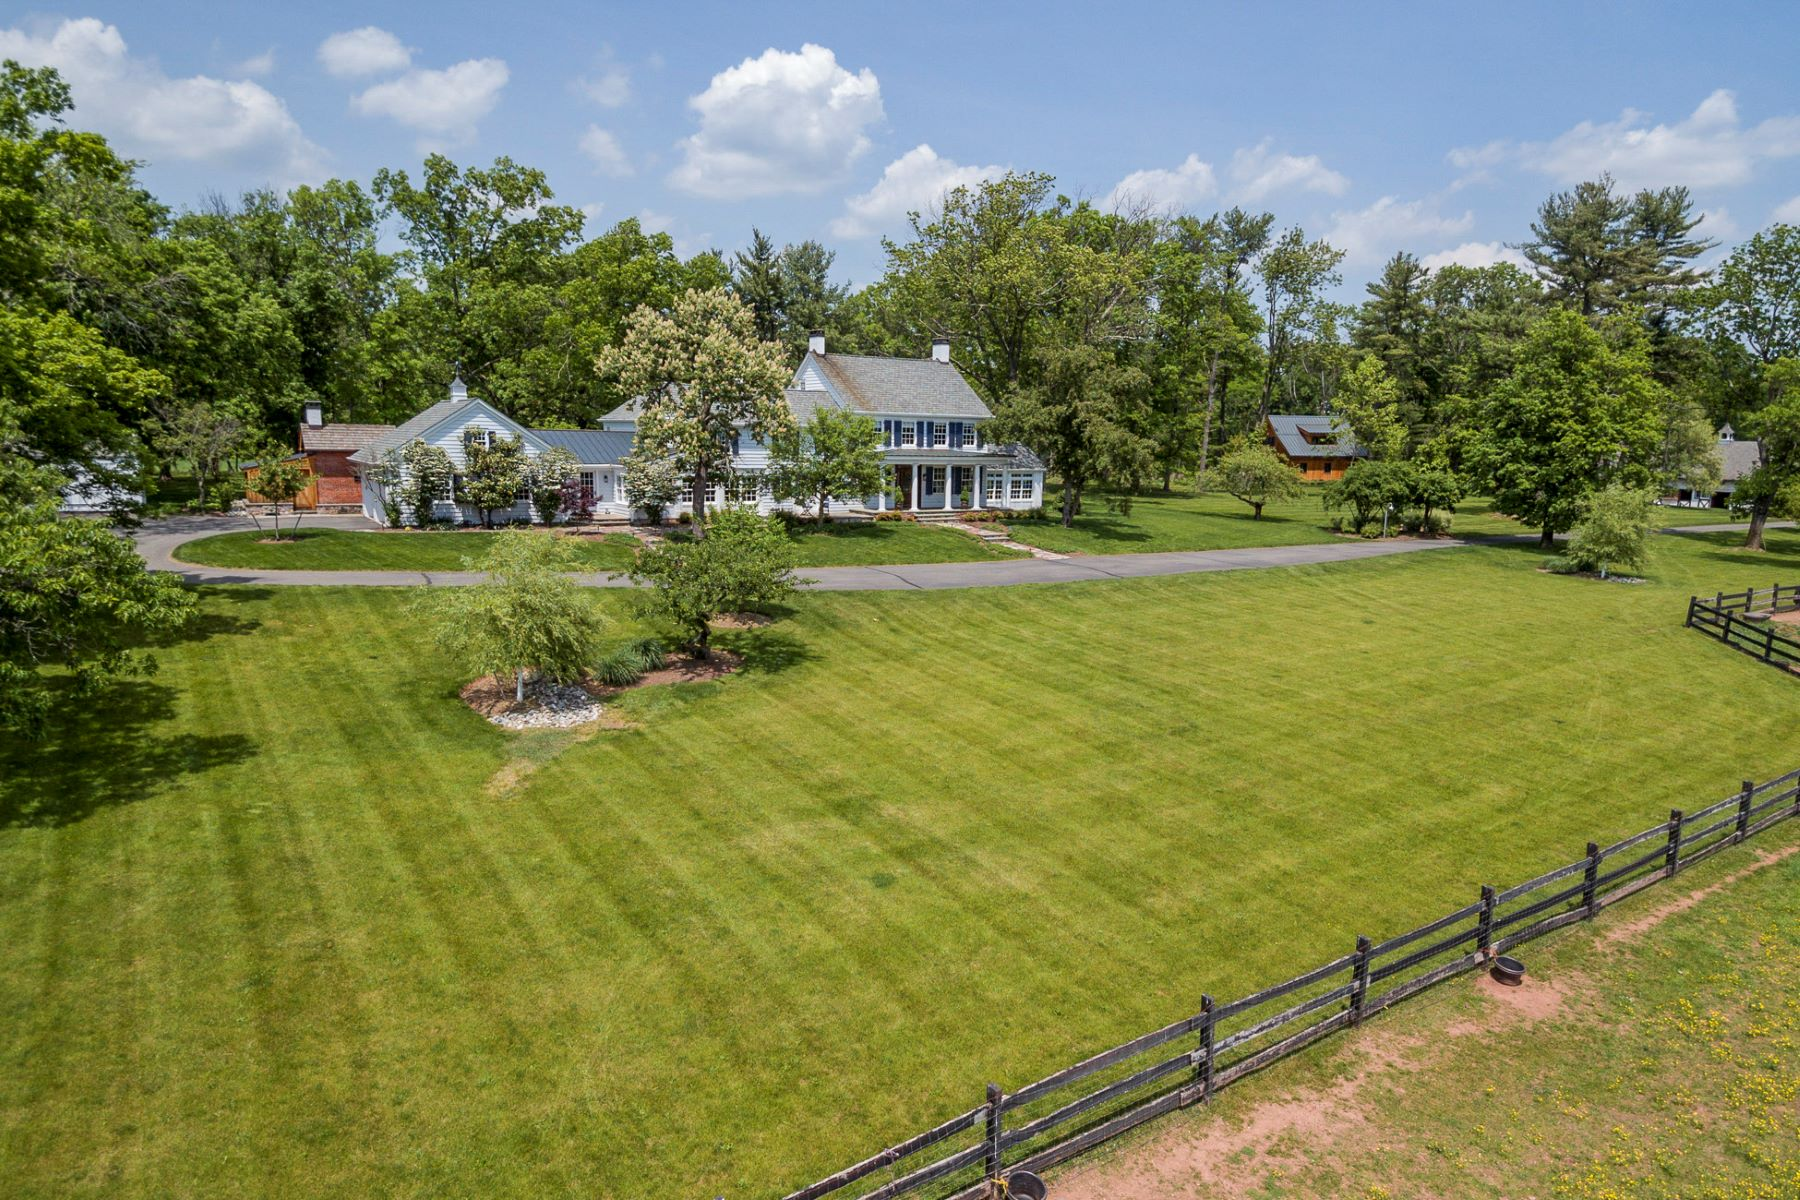 Villa per Vendita alle ore Historic Farm Reimagined for the Modern Equestrian - Hopewell Township 266 Province Line Road, Skillman, New Jersey 08558 Stati UnitiIn/In giro: Hopewell Township